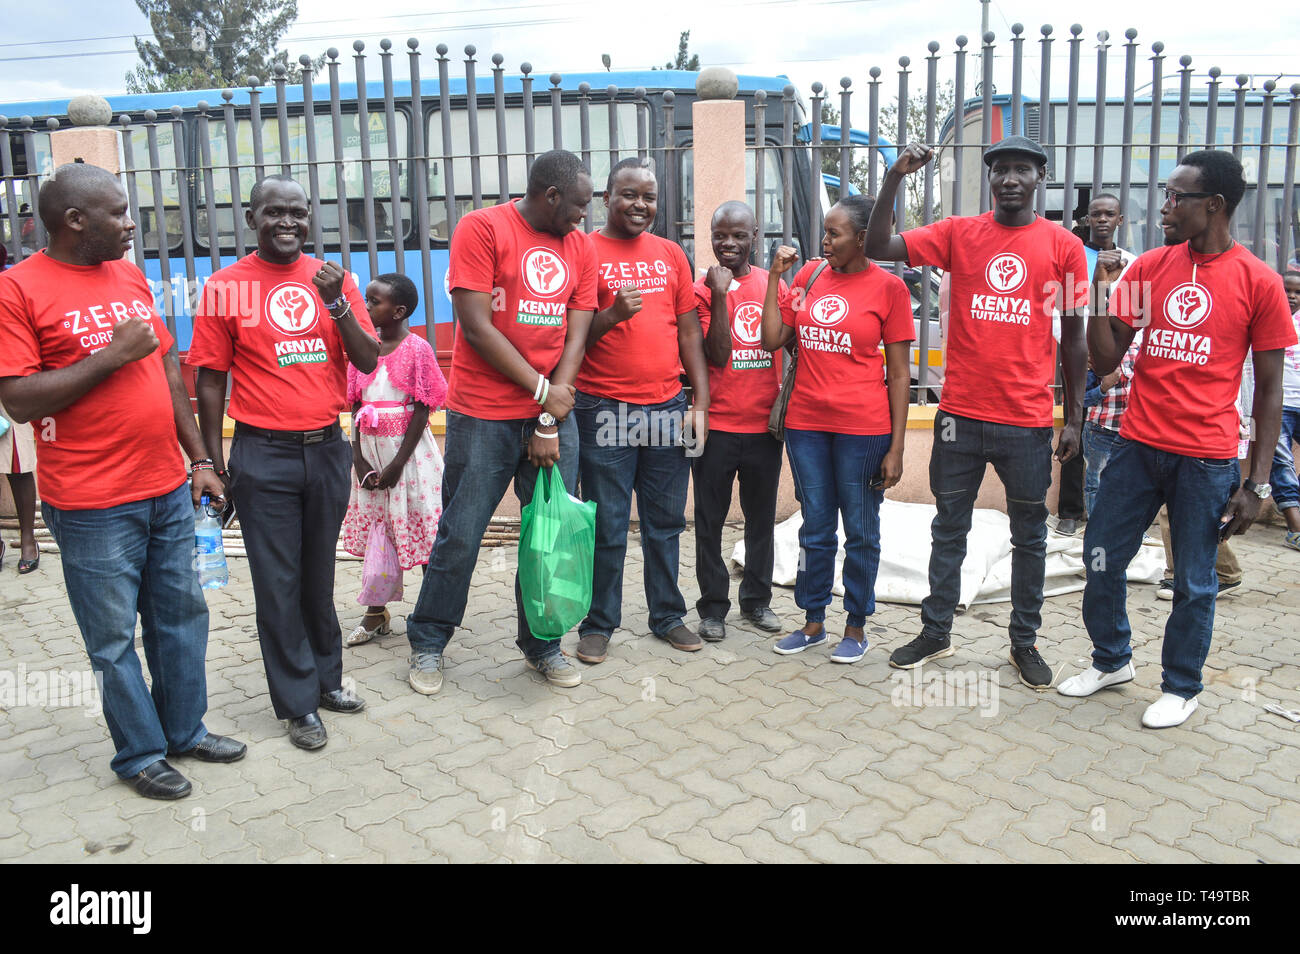 A group of activists allied to Kenya's Red Vests Movement are seen